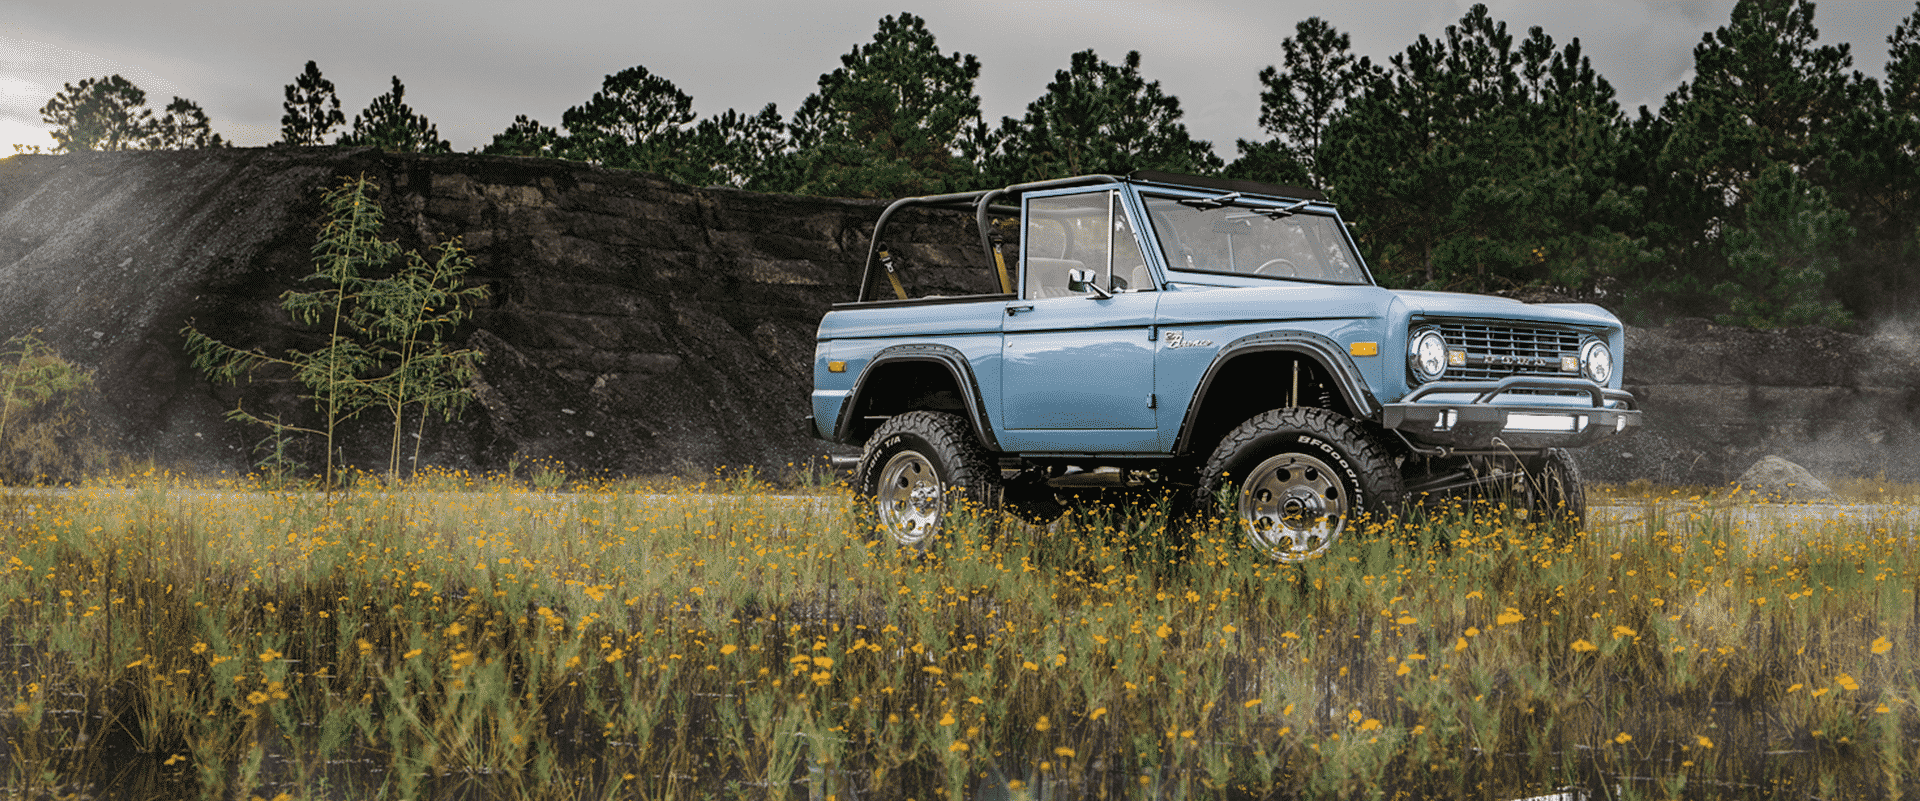 Off Roading in a Mountain Edition Classic Bronco by Early Ford Broncos